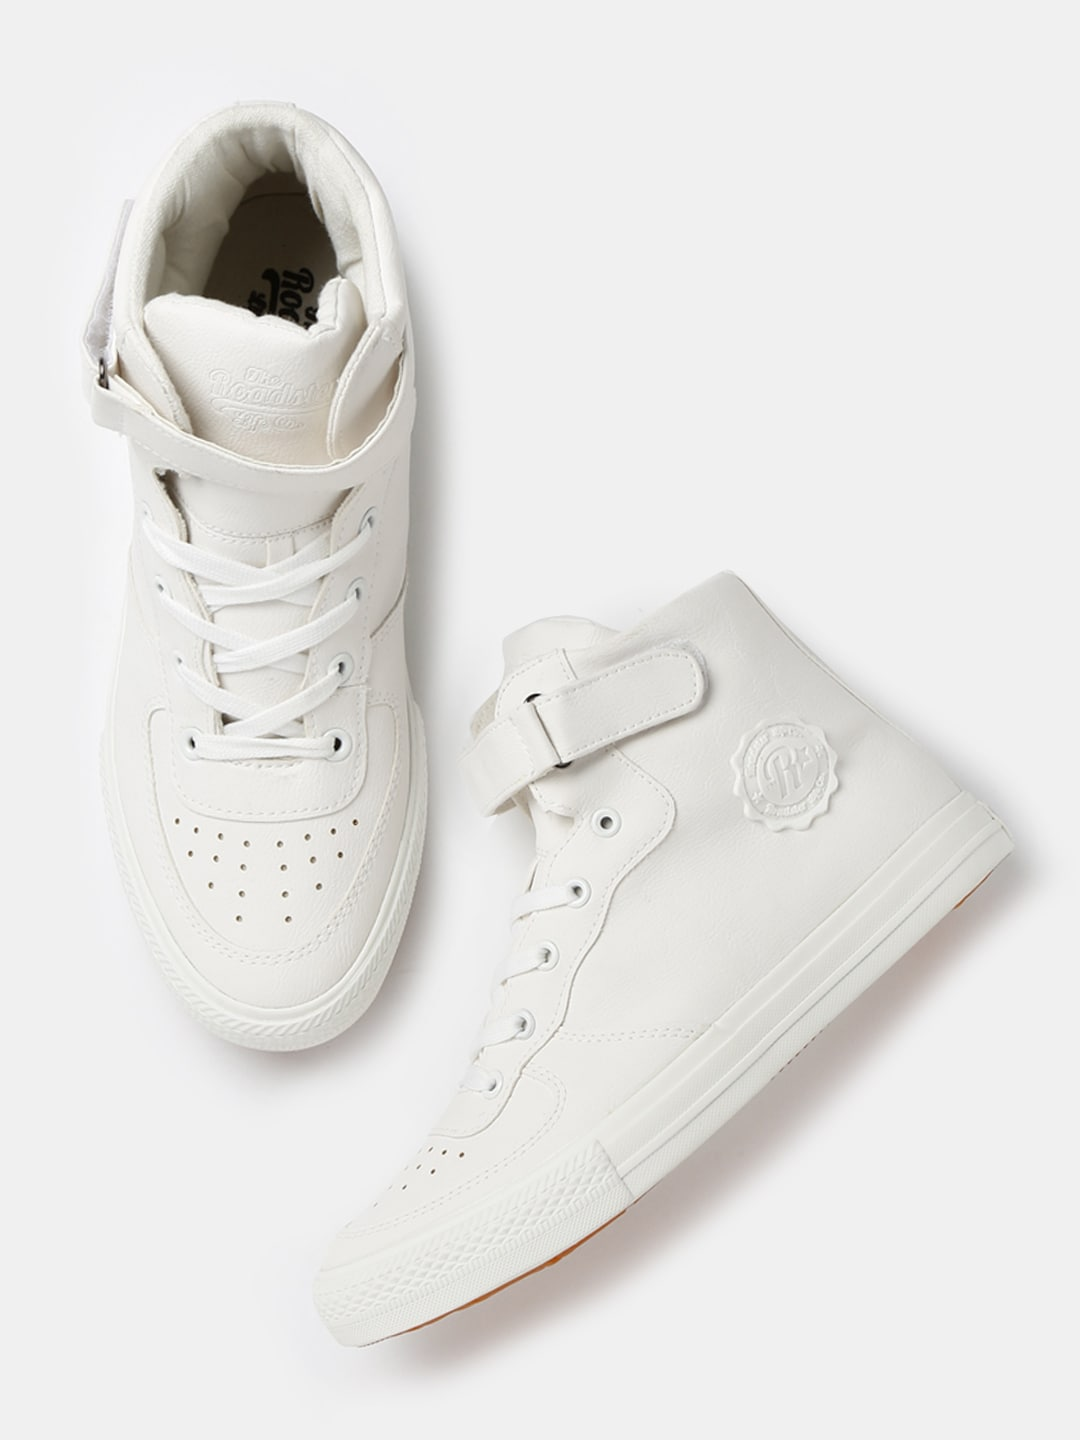 Buy Roadster Brand Casual Shoes Online from Myntra 3fa4b388bcad5